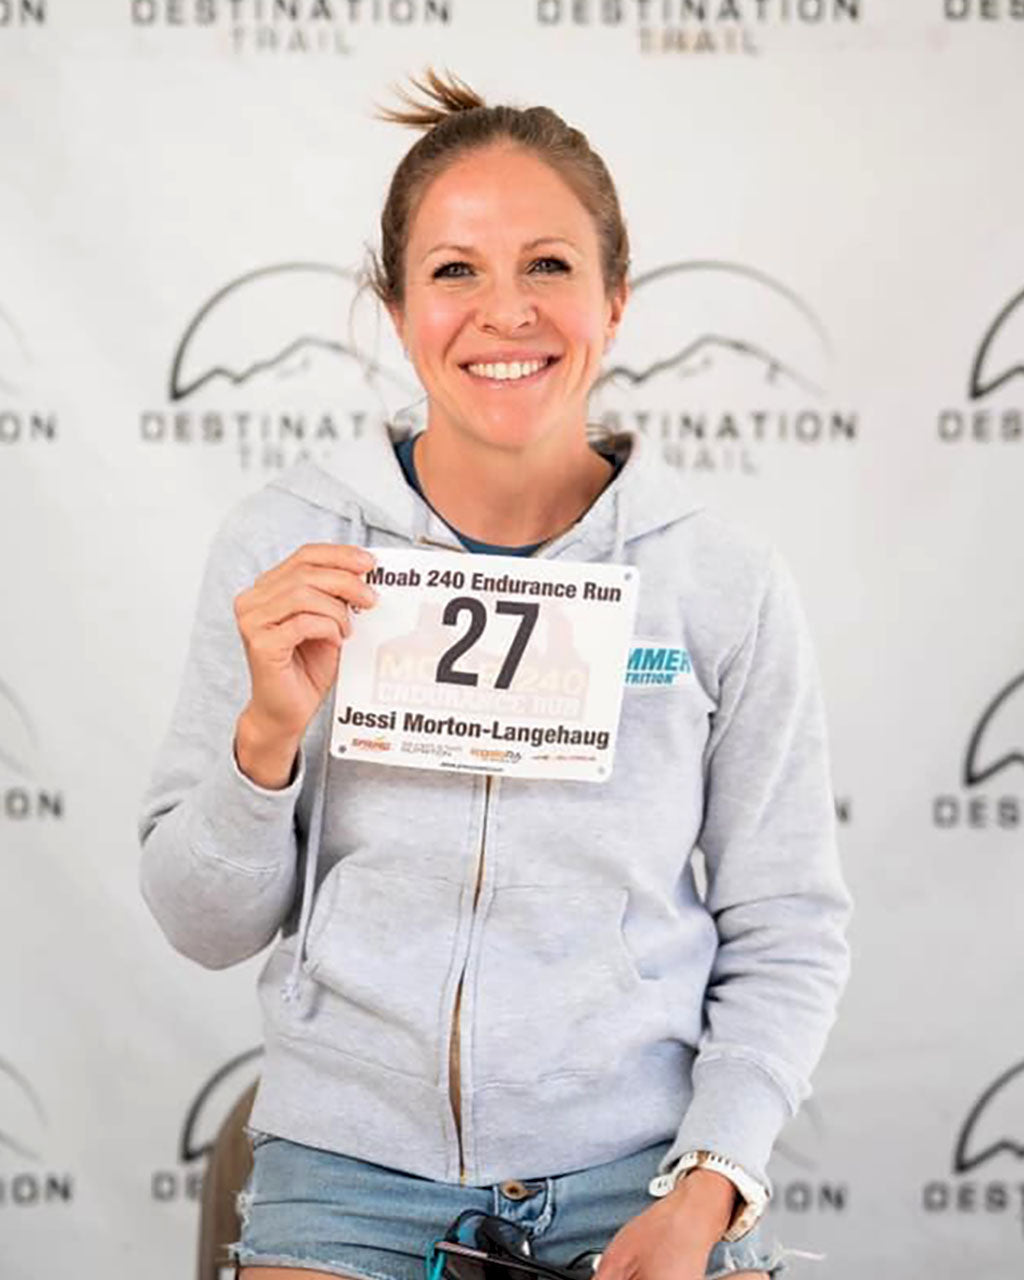 Jessi Morton-Langehaug holding bib #27 in Moab 240 pre-race picture